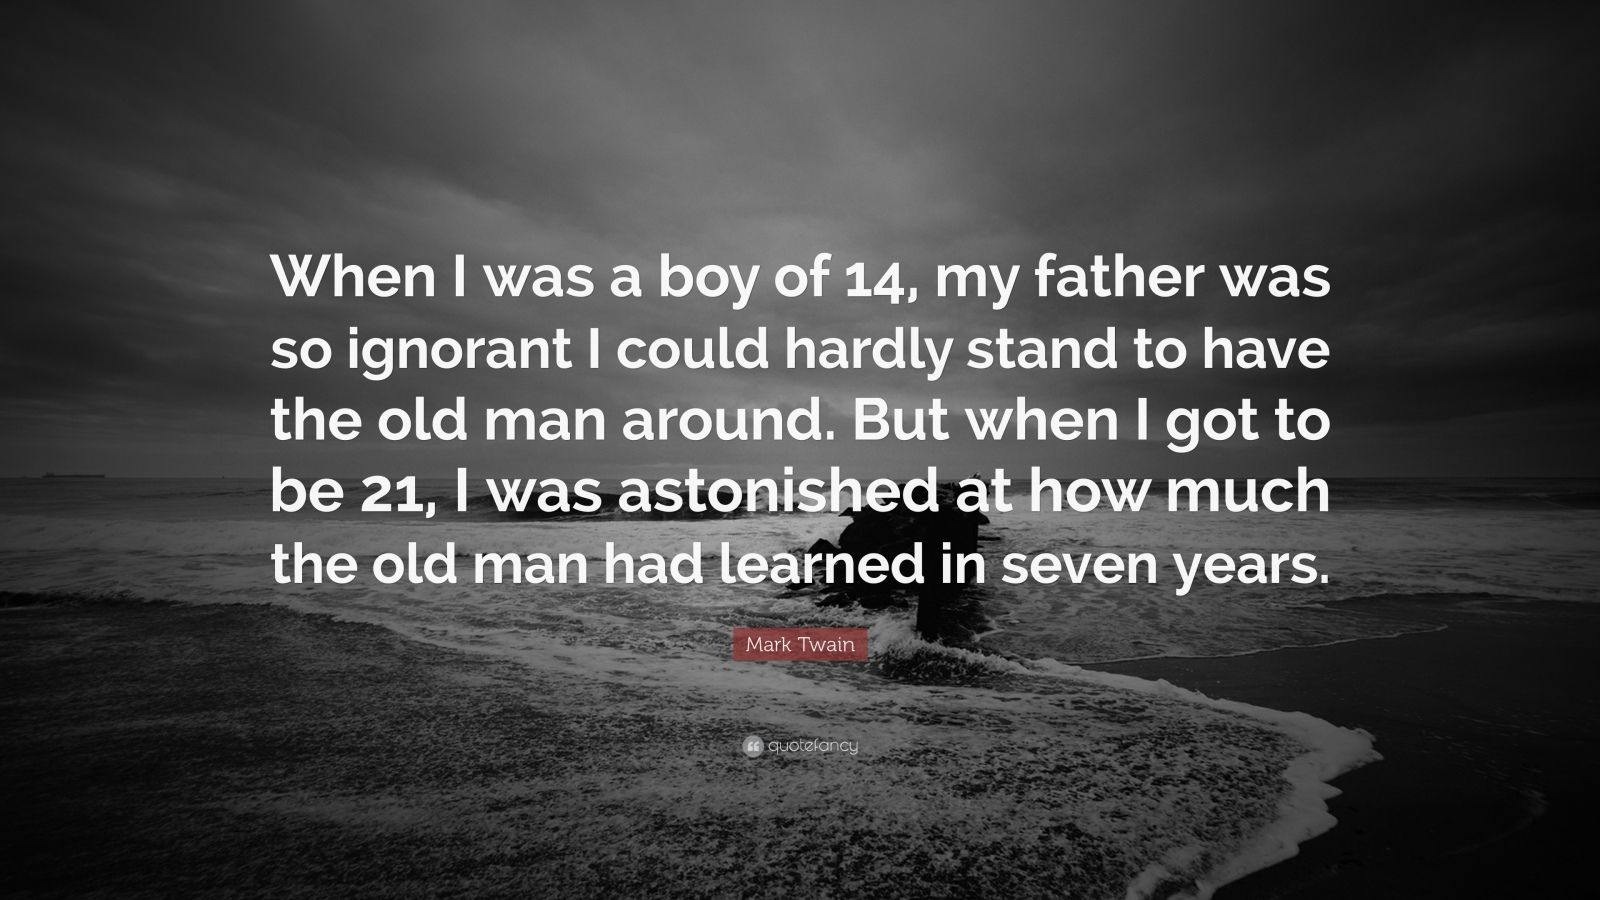 mark twain quote �when i was a boy of 14 my father was